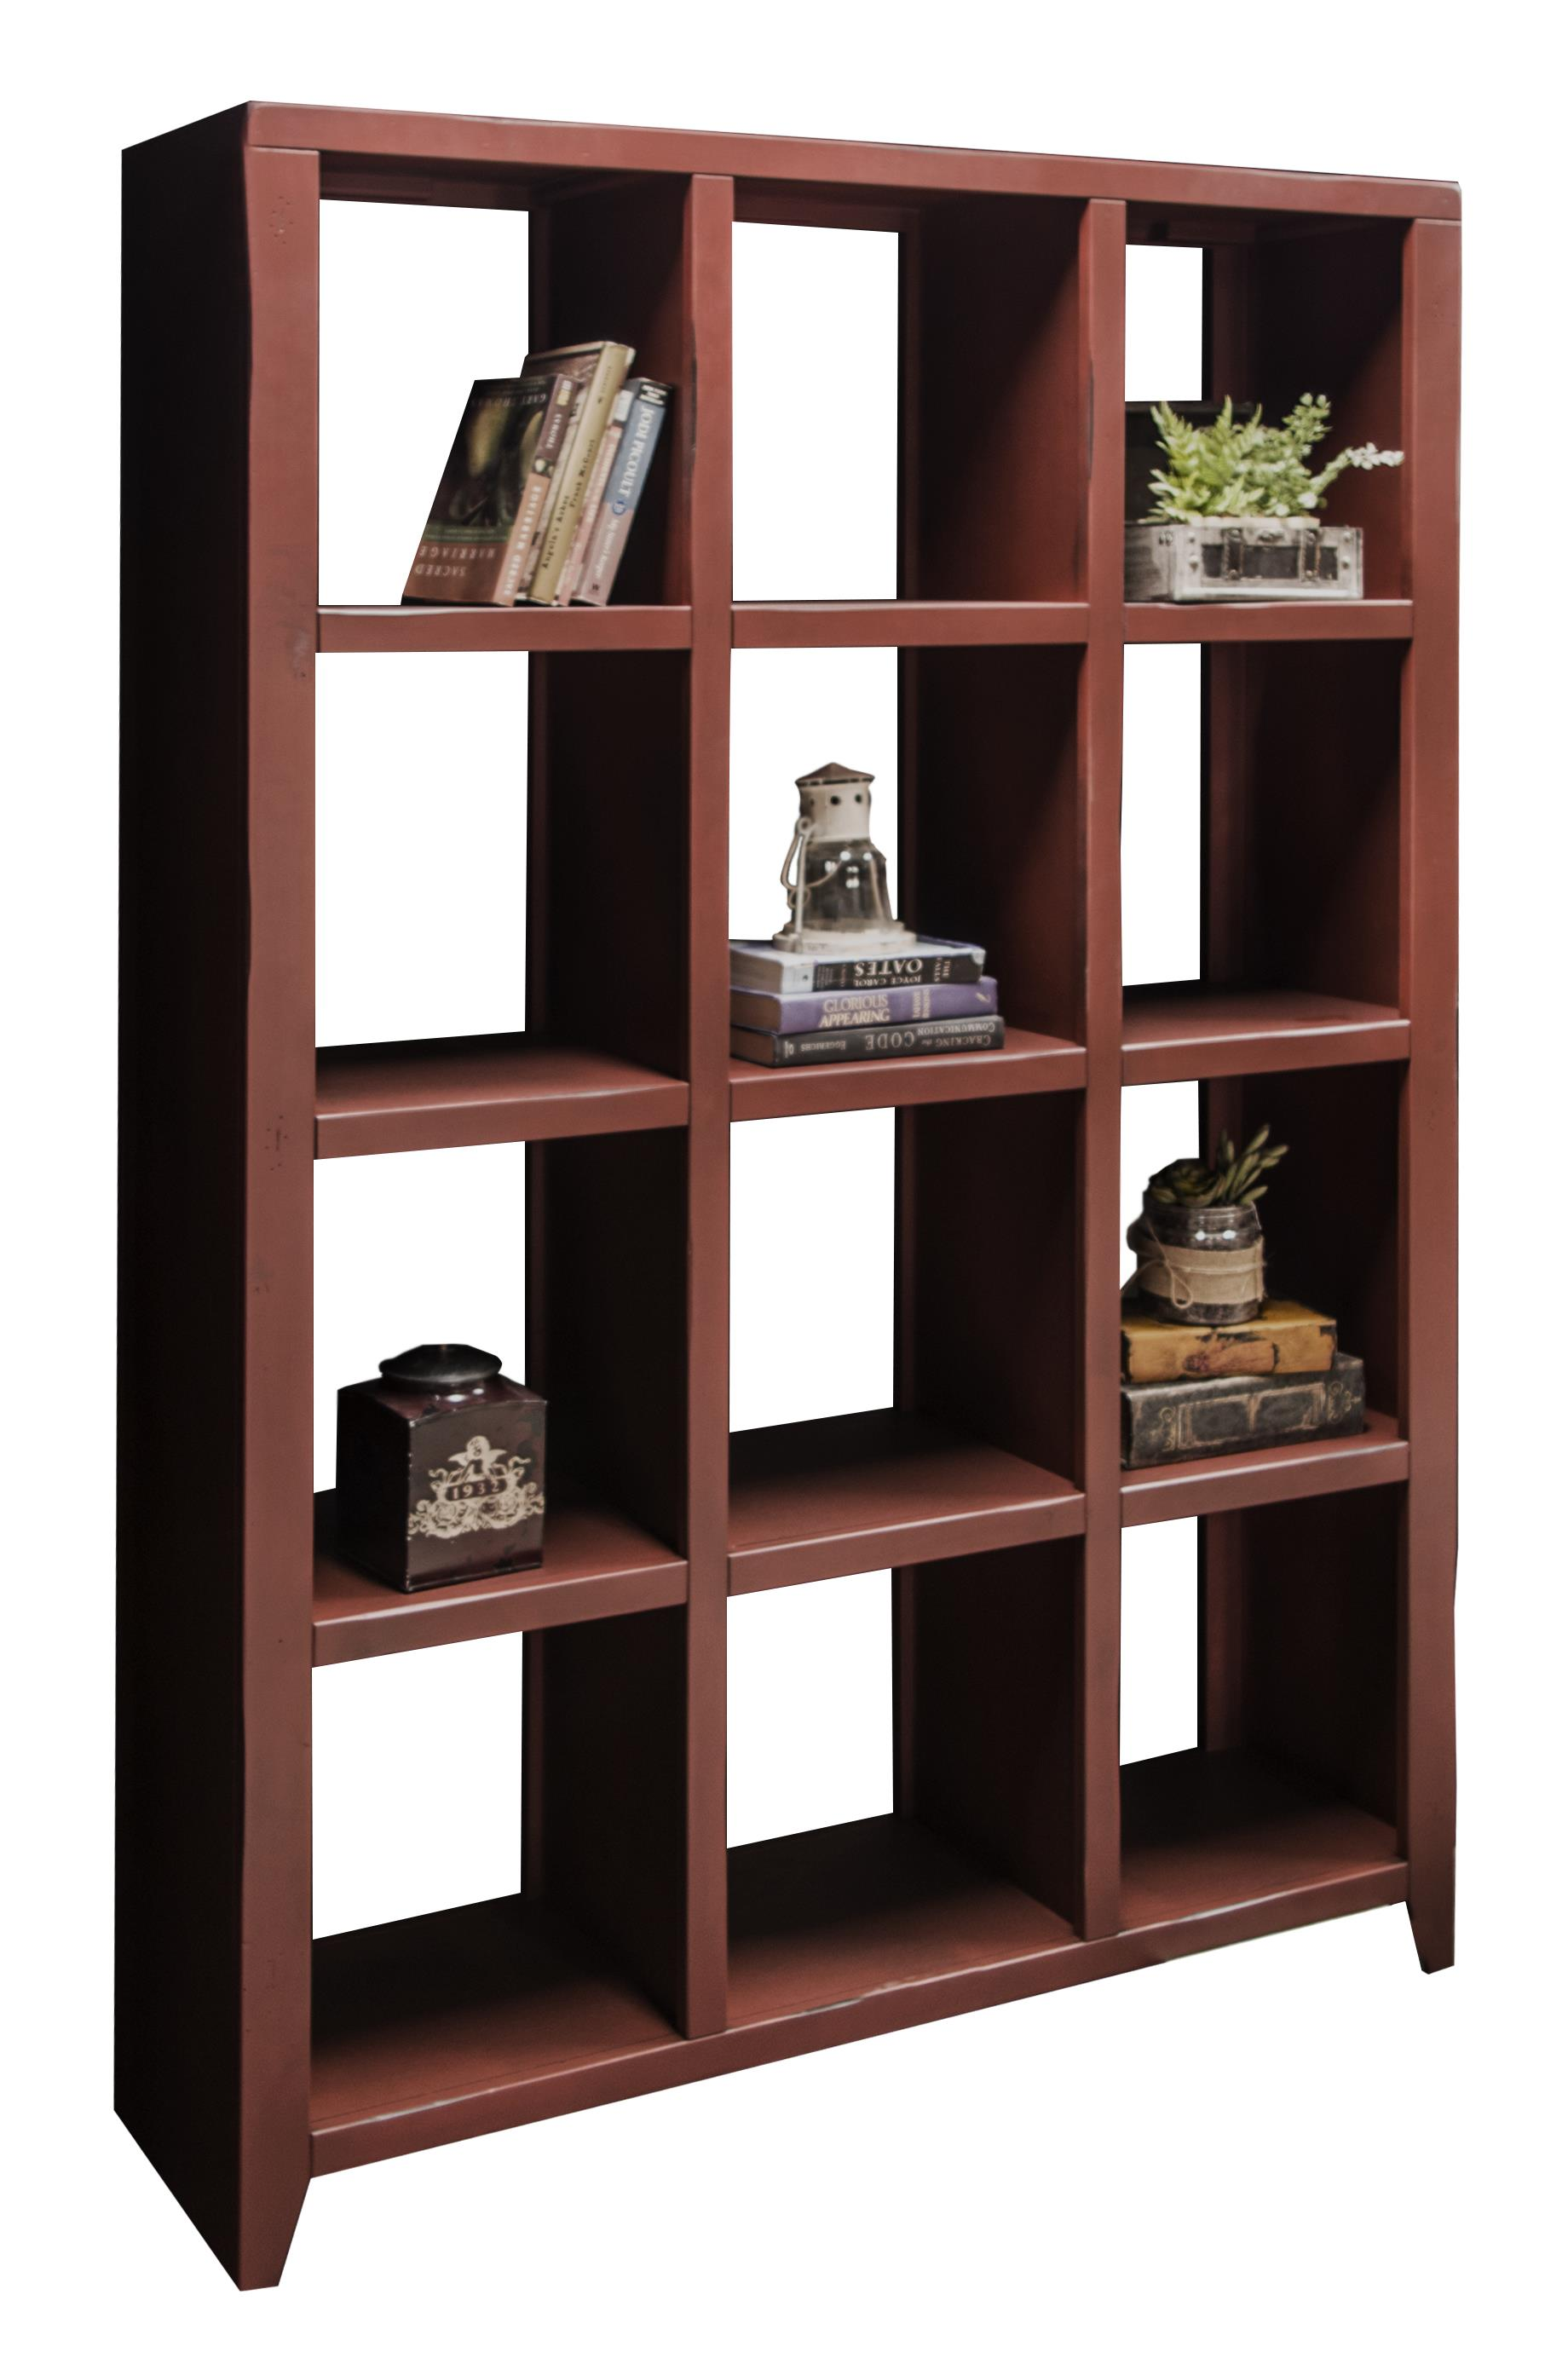 Legends Furniture Calistoga Collection Calistoga Room Divider - Item Number: CA6304-RRD